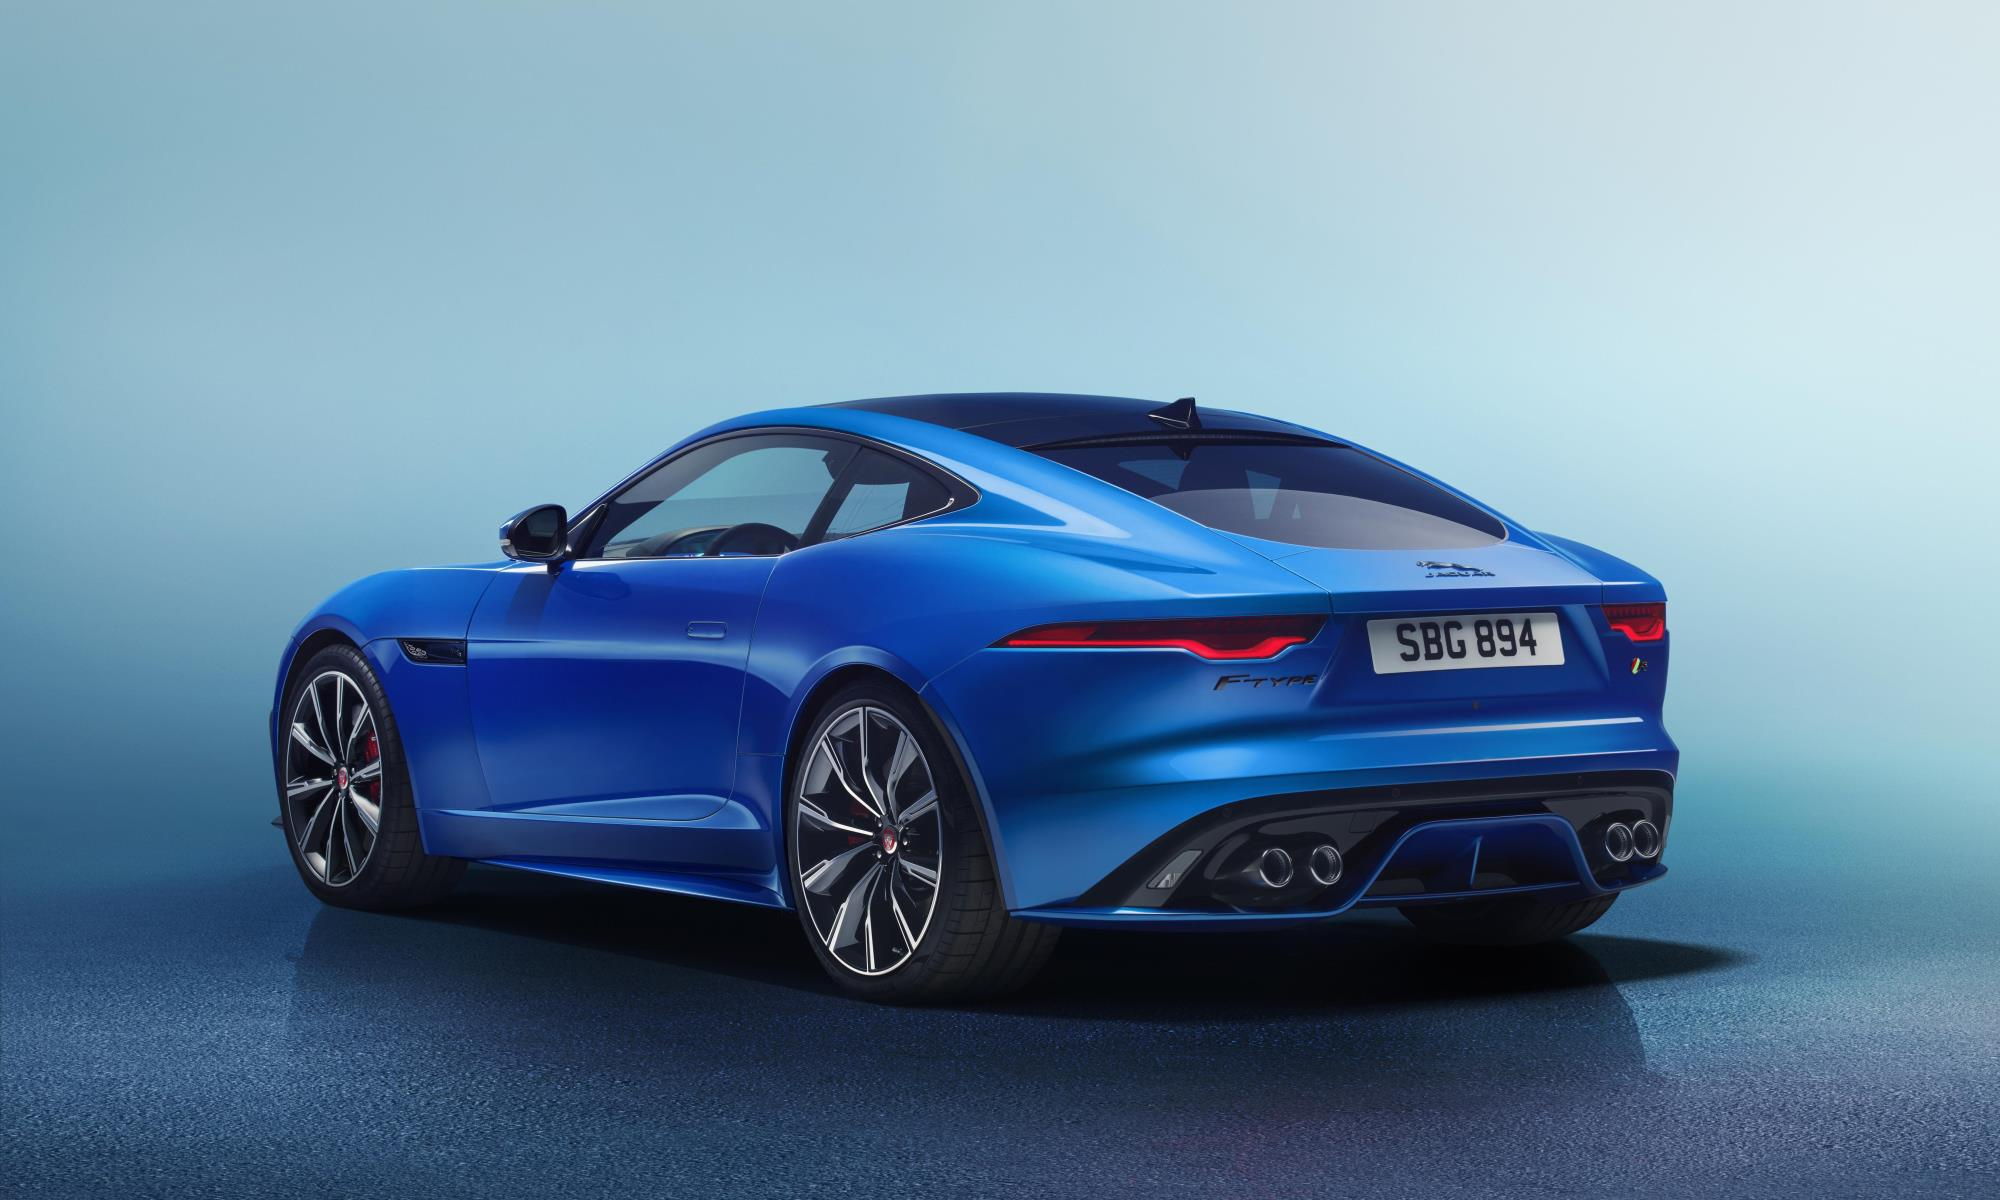 New Jaguar F-Type rear studio